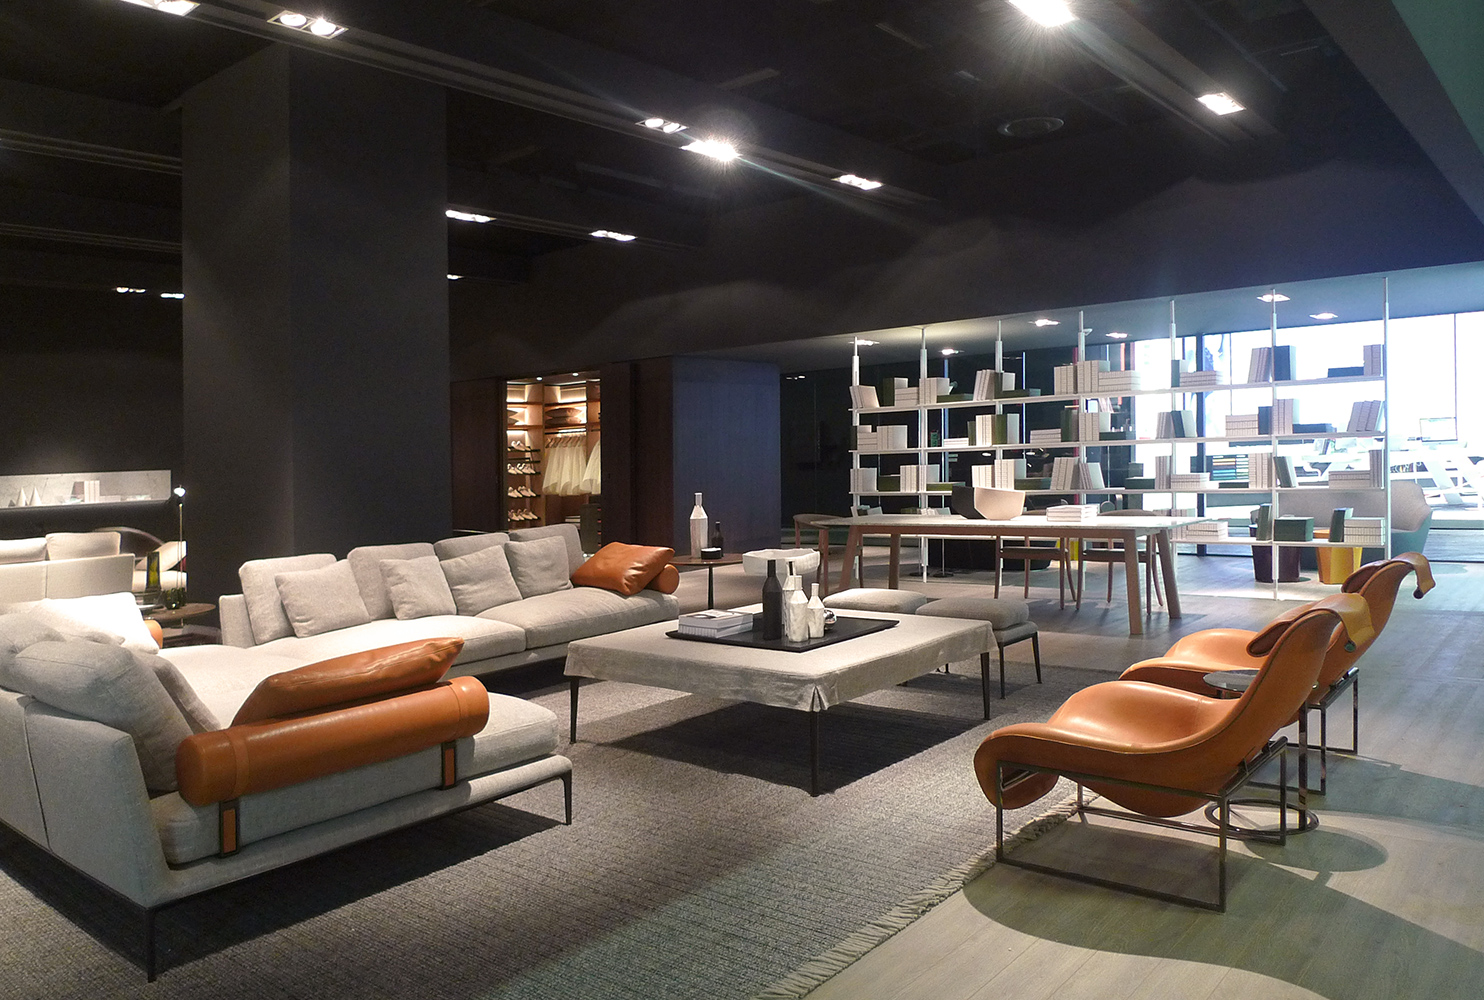 B&B Italia at IMM Cologne 2019